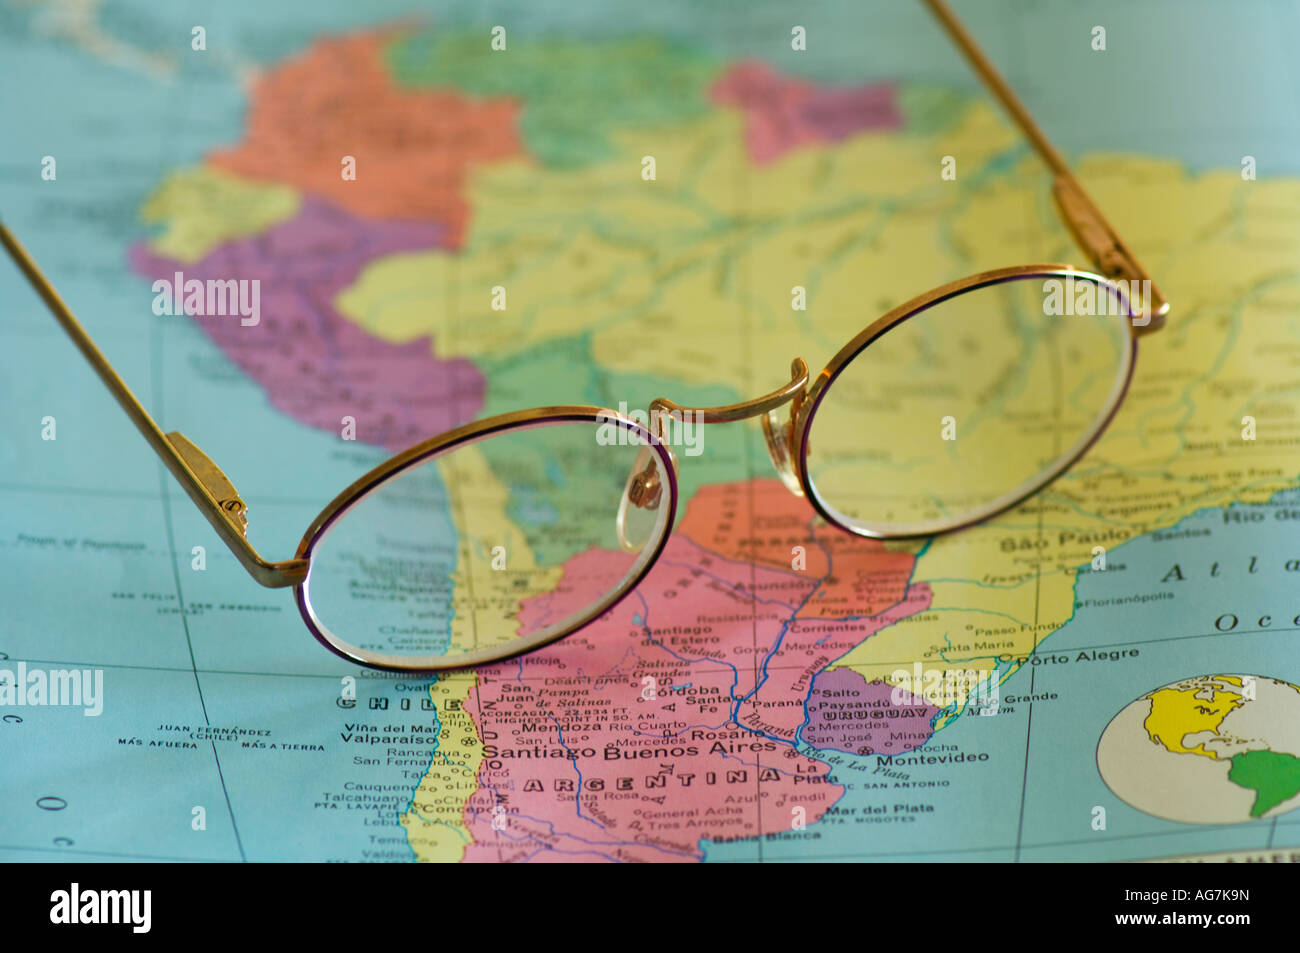 closeup of reading glasses on map of South America - Stock Image